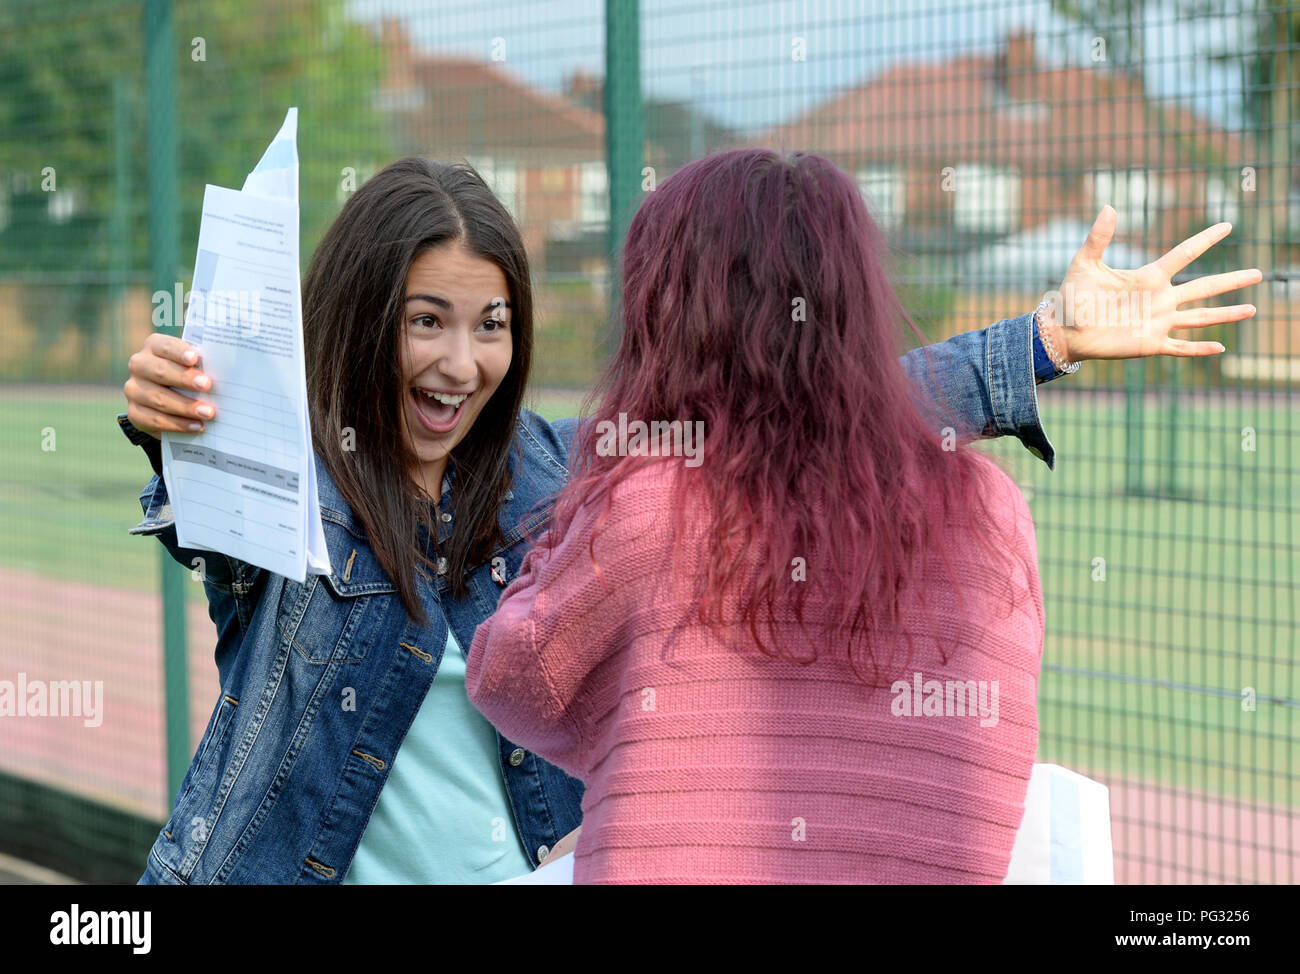 Manchester, UK. 23rd Aug, 2018. Tea Milanbovic who is a pupil at Withington Girl's School, Manchester celebrates getting 9 grade 9's passes and a A^ pass. Photograph by Credit: Howard Walker/Alamy Live News - Stock Image